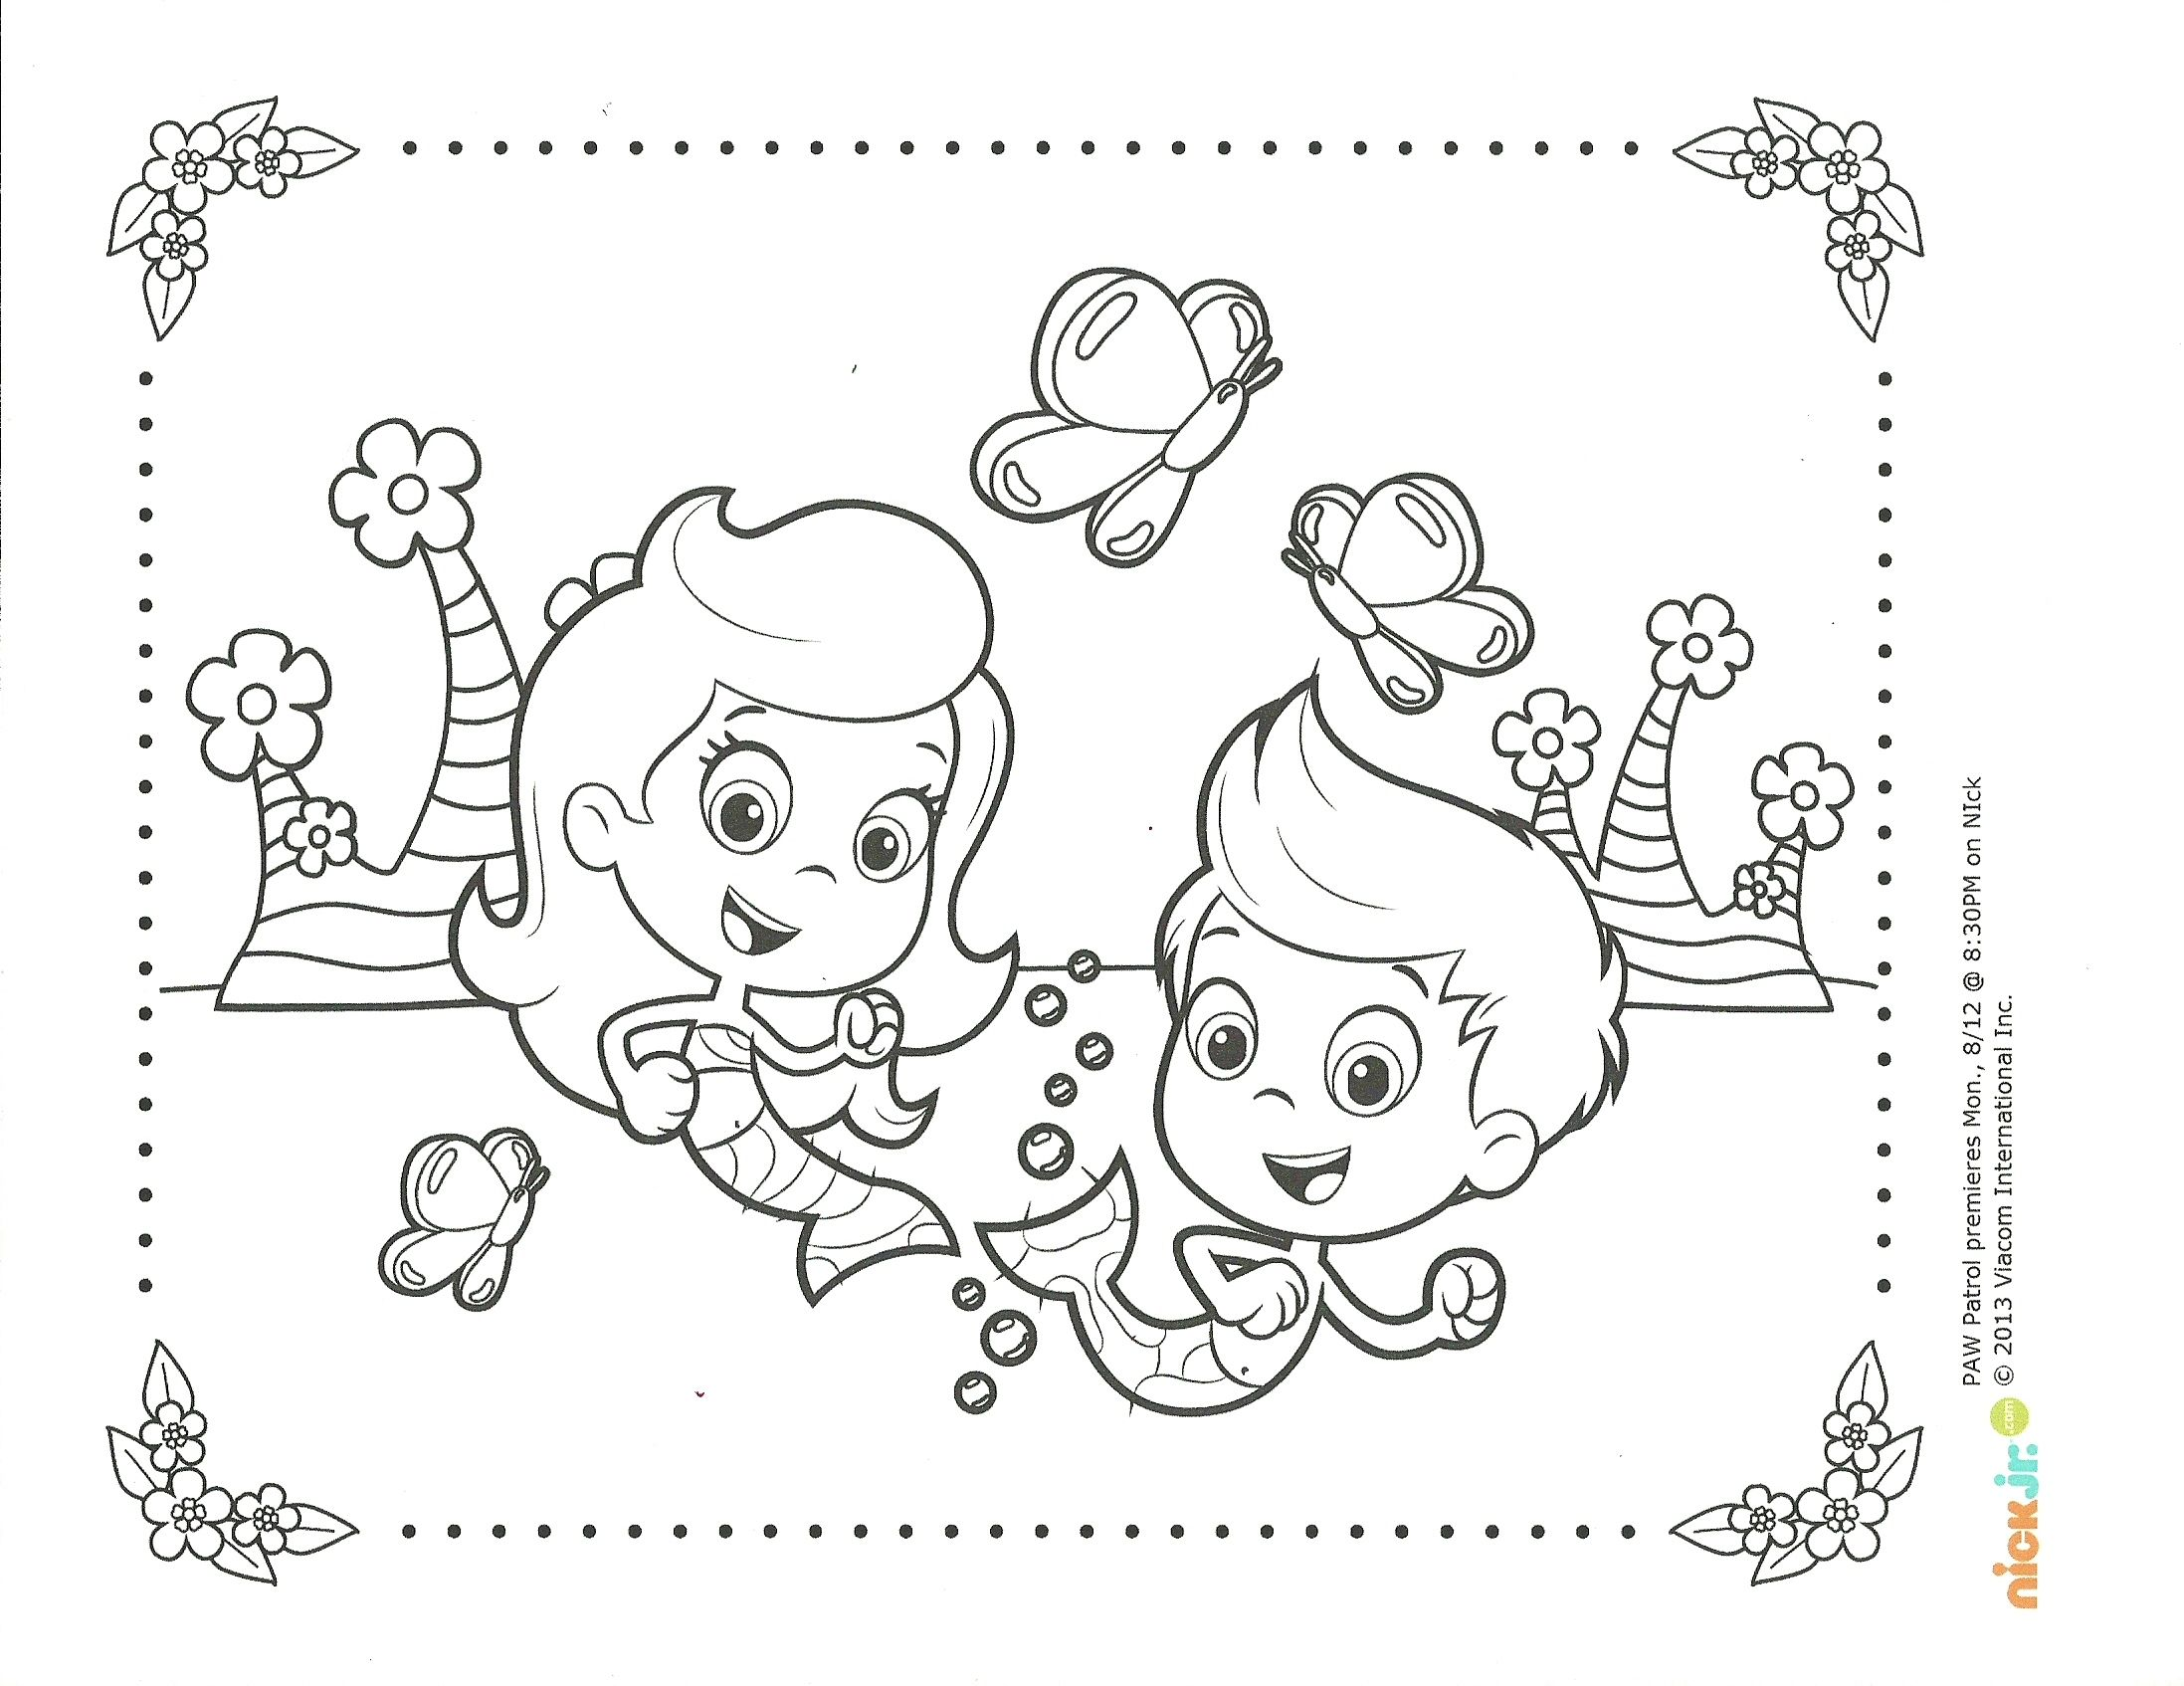 Bubble Guppies Springtime Coloring Page Bubble Guppies Coloring